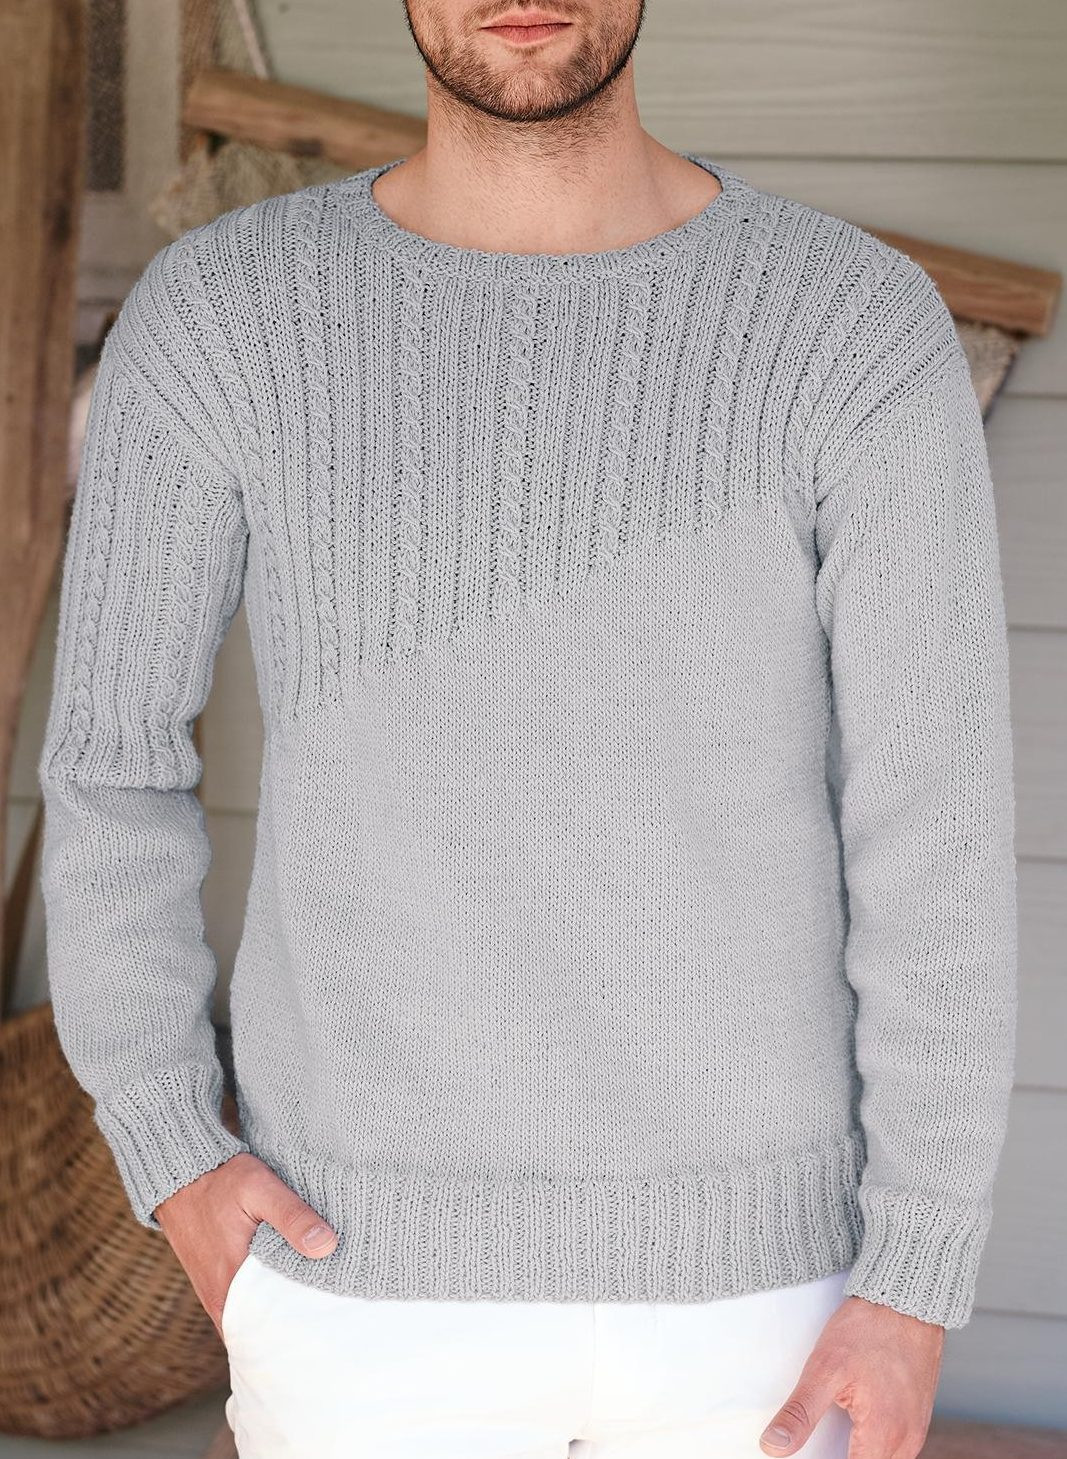 Mens Knit Sweater Luxury Men's Sweater Knitting Patterns Of Perfect 42 Pictures Mens Knit Sweater